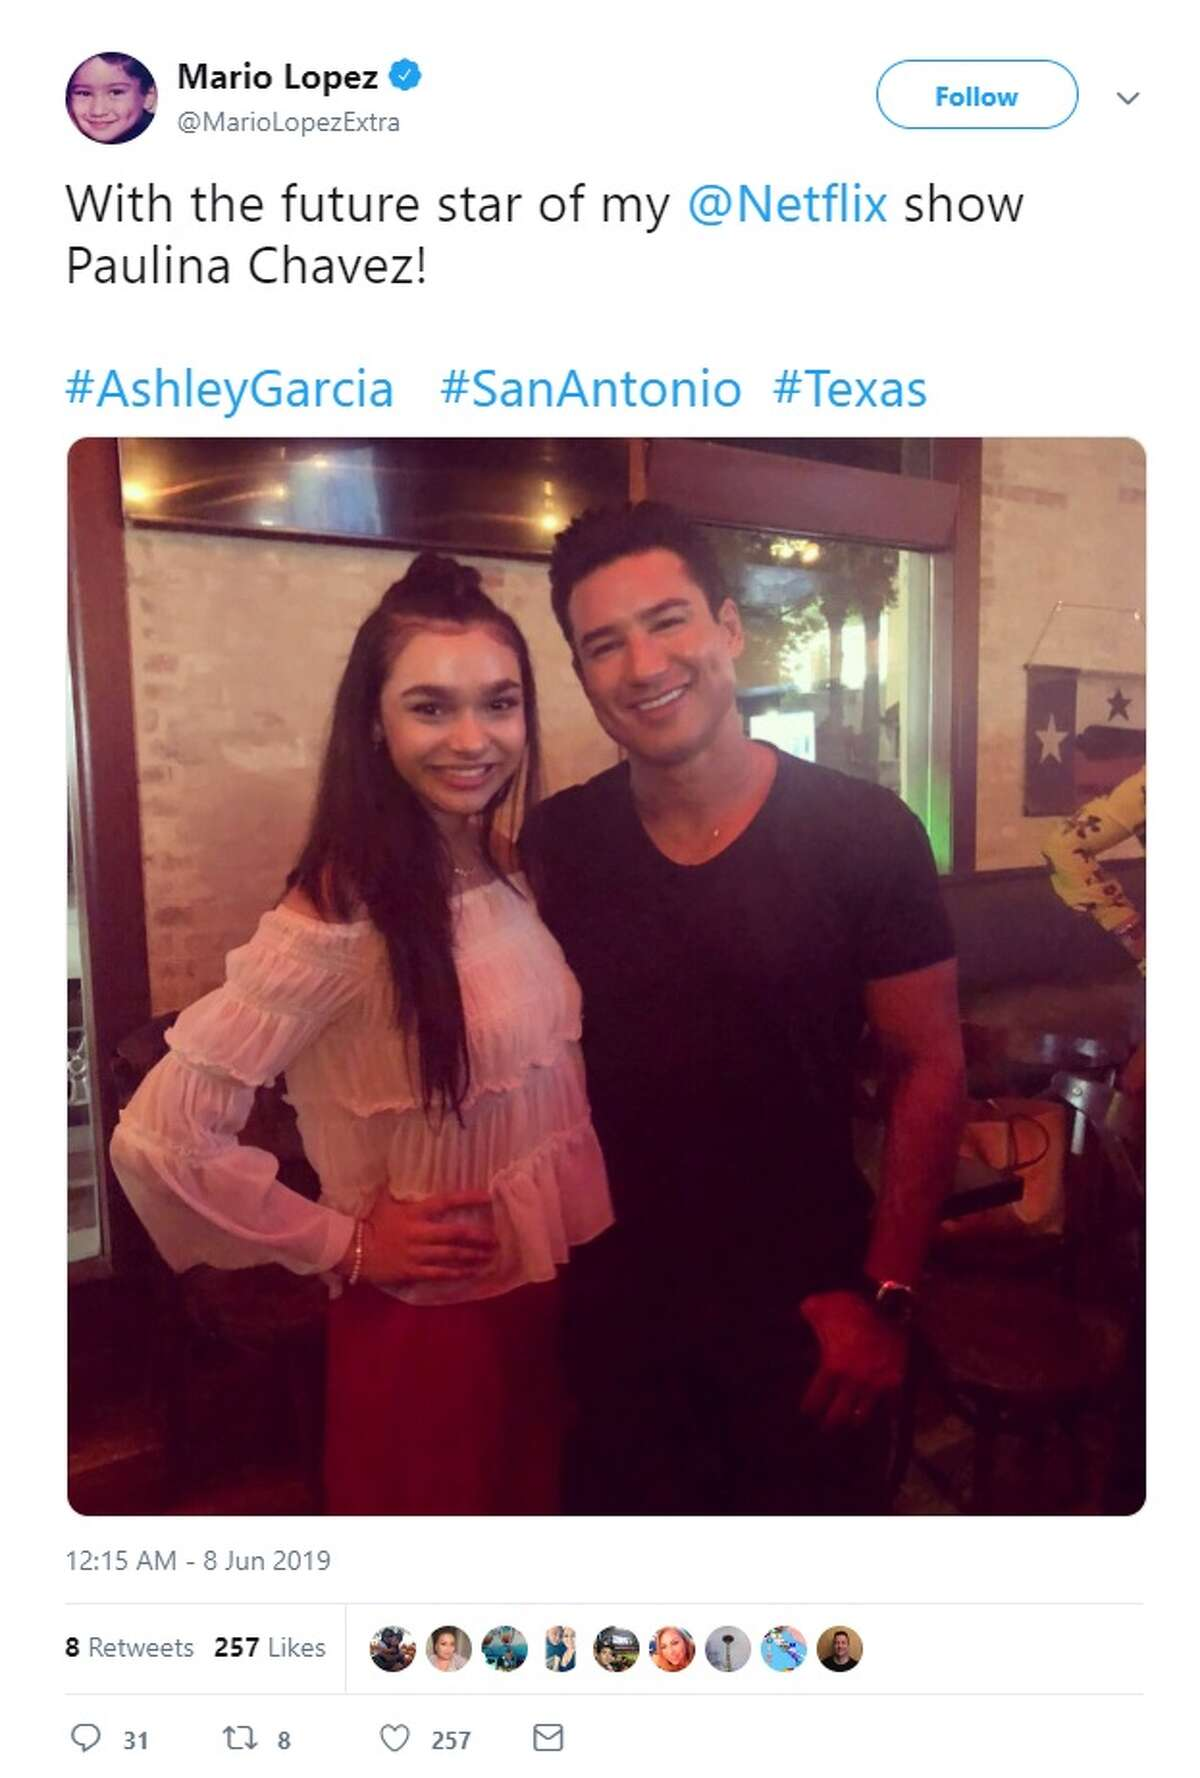 Mario Lopez takes a picture with actress Paulina Chavez while in San Antonio on Saturday.